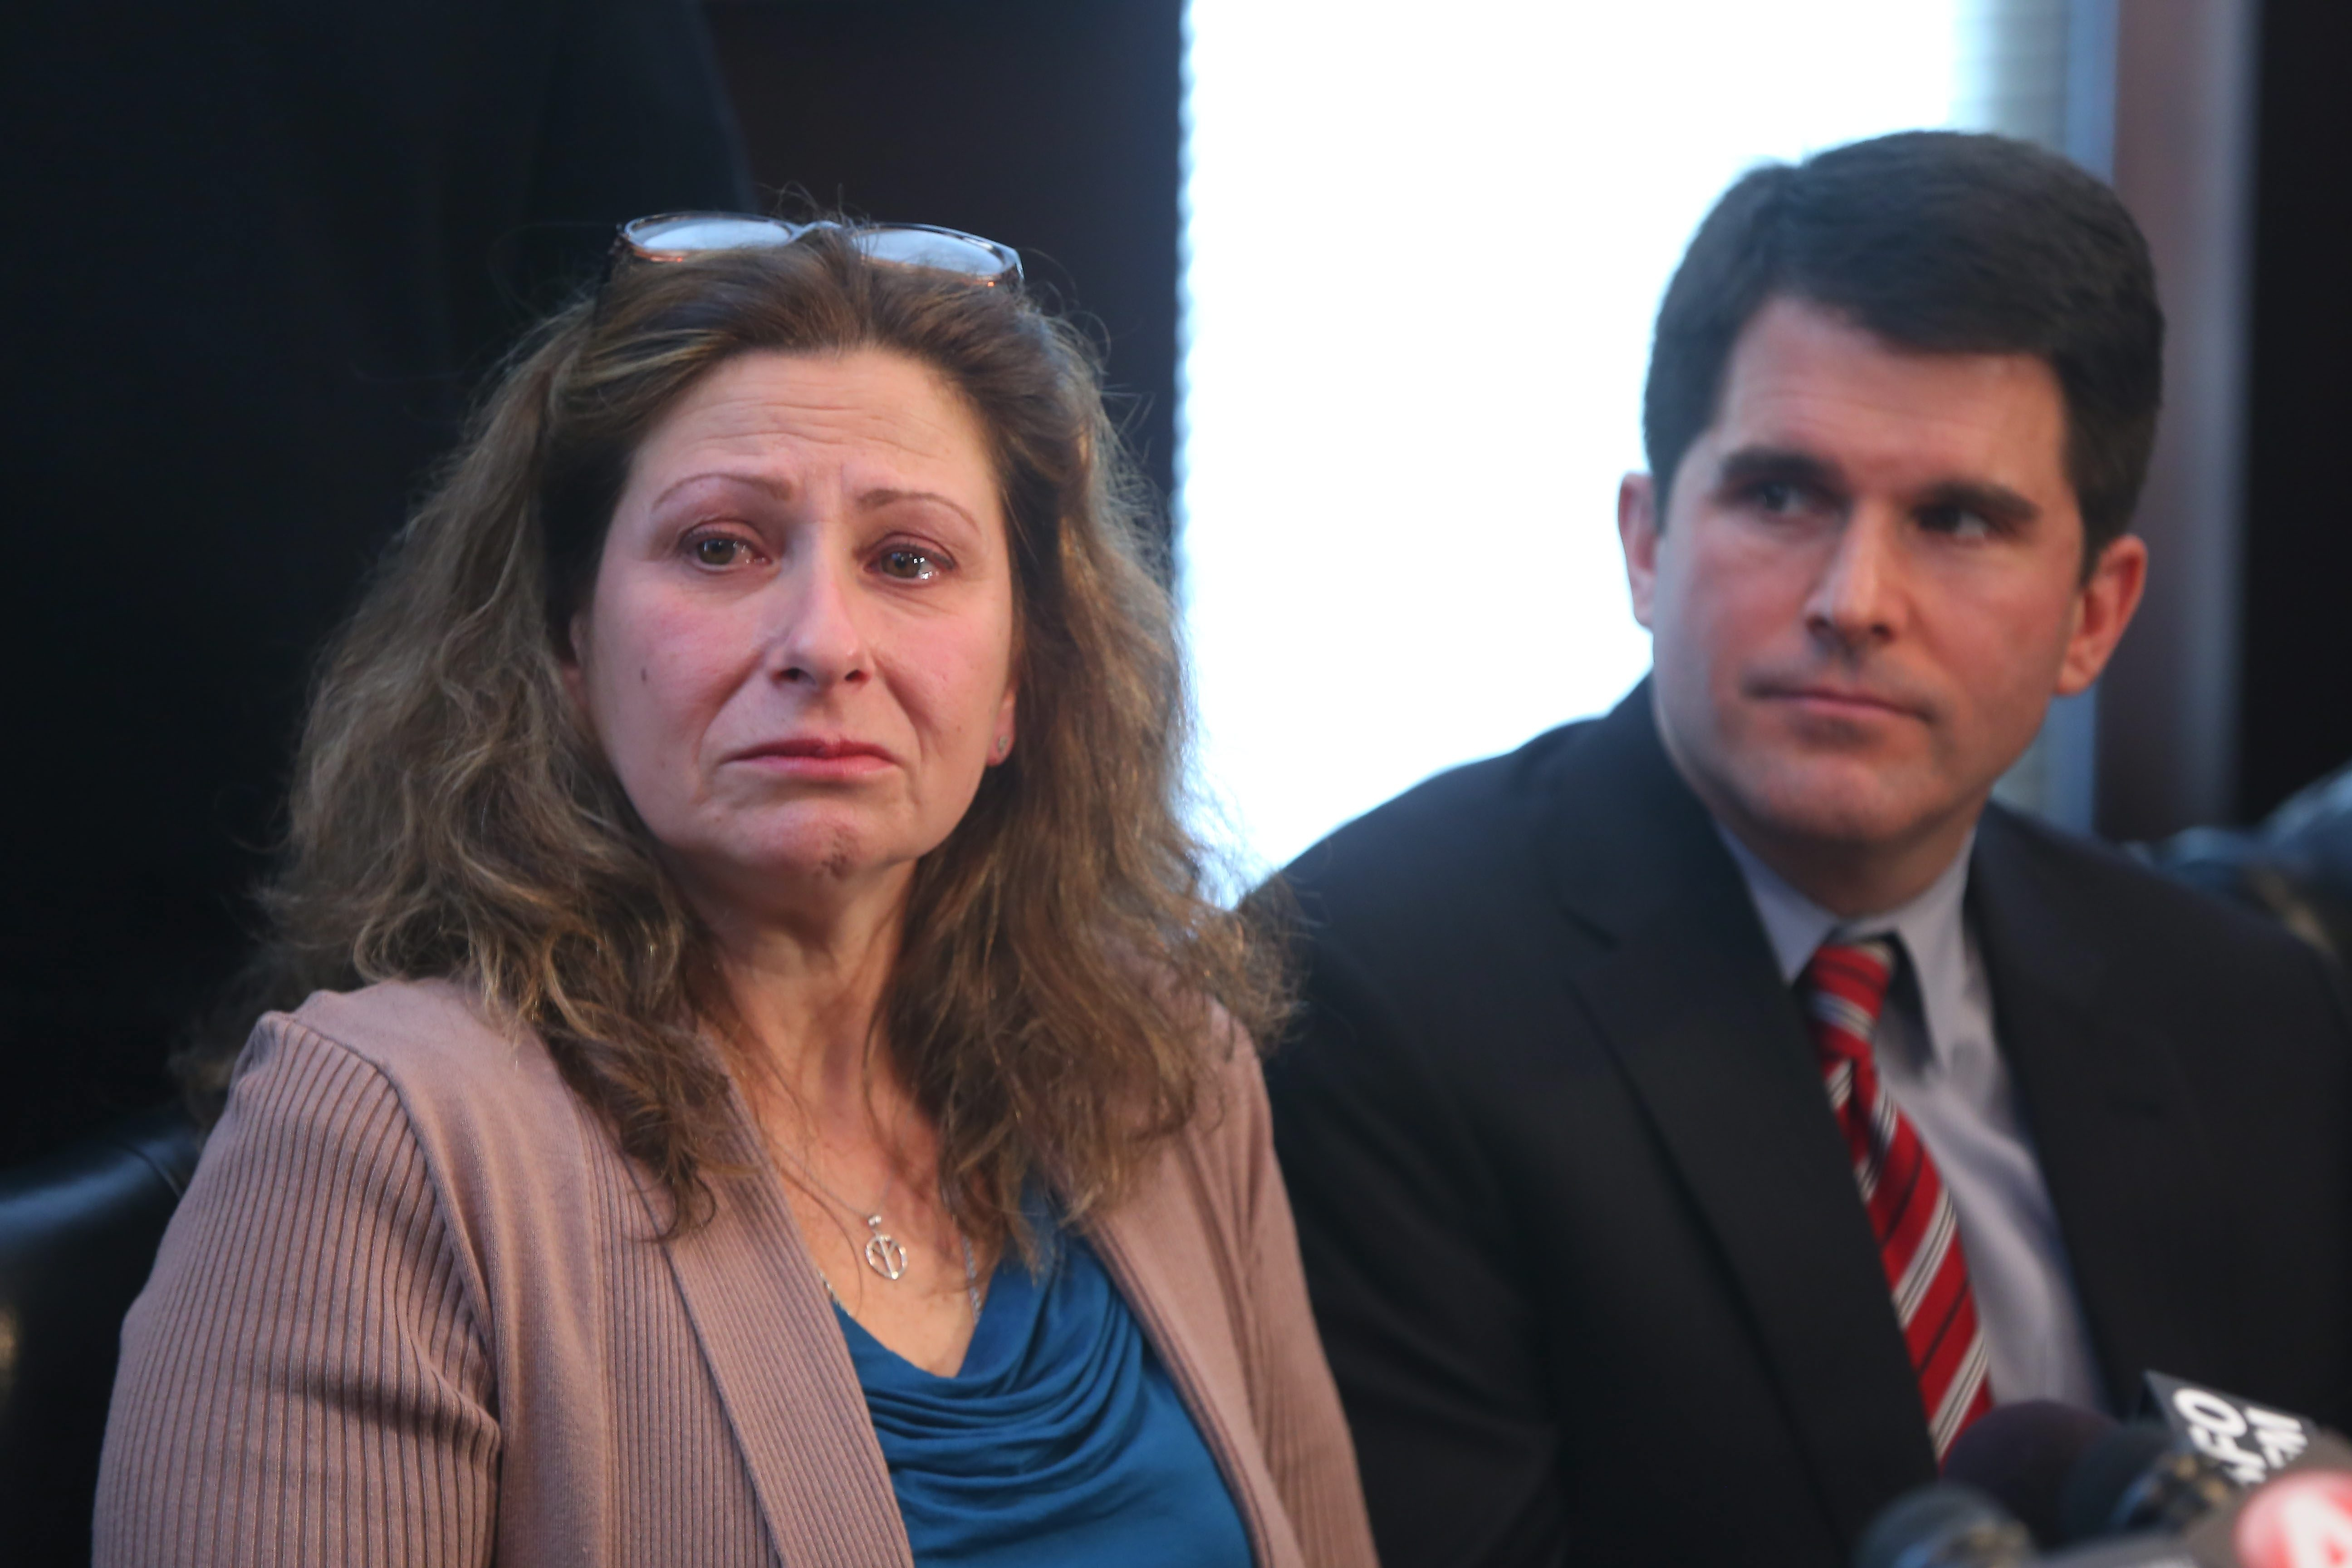 """""""The present law lets drunk drivers leave the scene of a crash with no repercussions. Why is it so hard to change that?"""" said Tammy A. Schueler, mother of Alix Rice, shown here with her attorney Lawlor F. Quinlan III in February.  (Mark Mulville/News file photo)"""